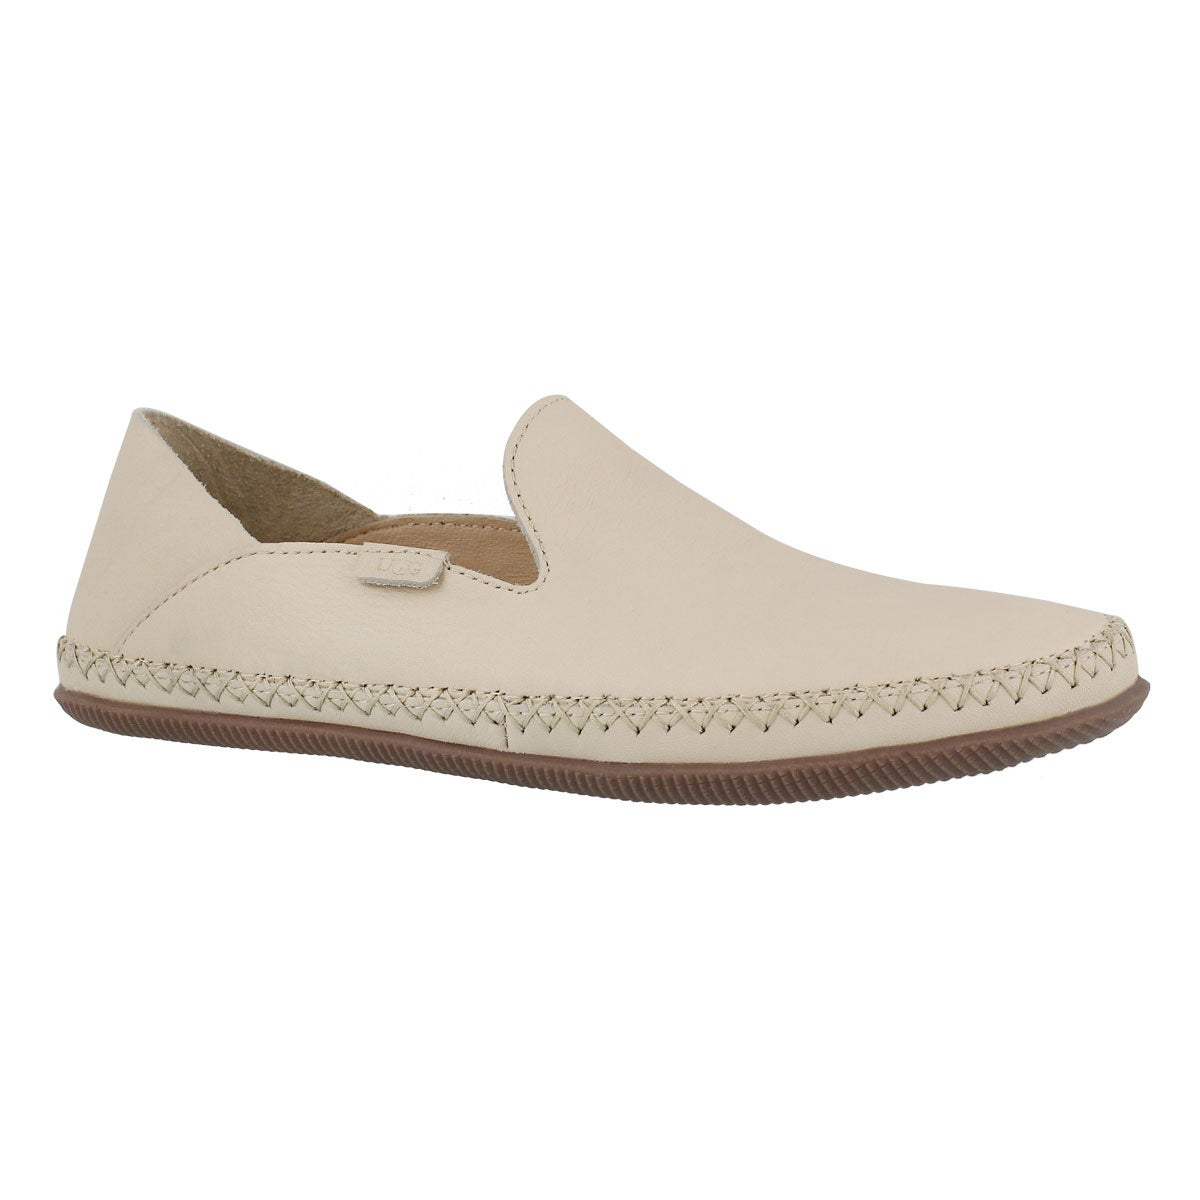 Women's ELODIE cream casual slip on shoes